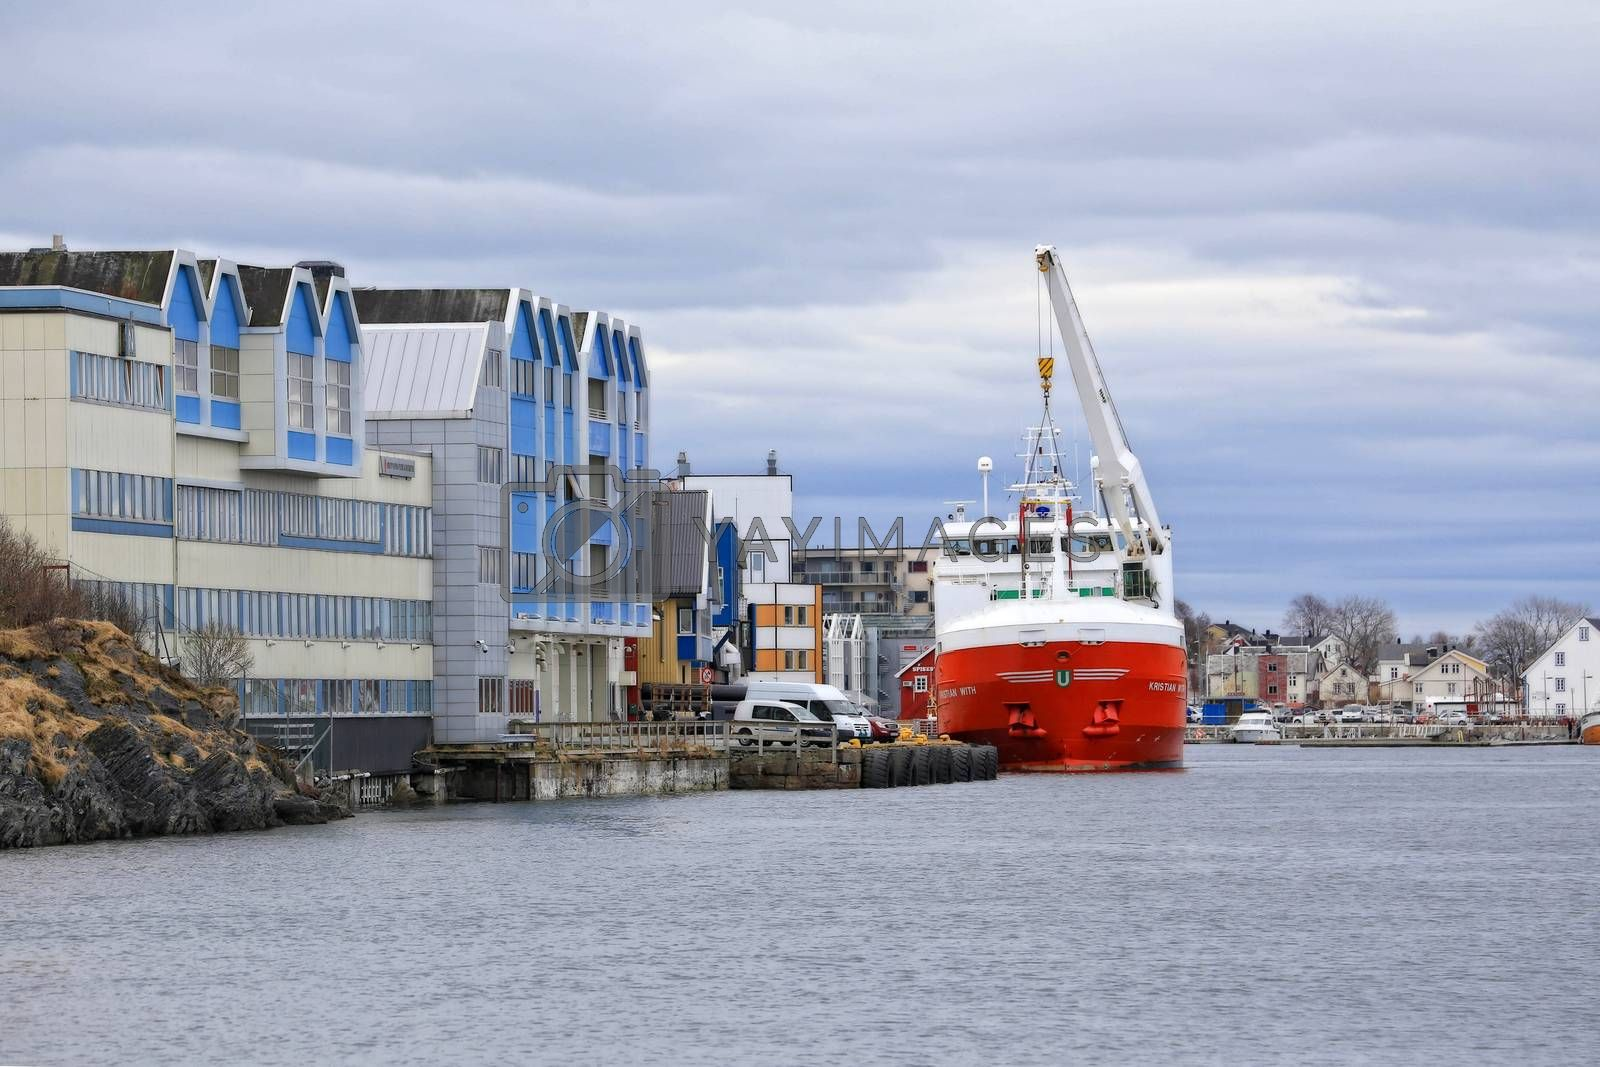 Royalty free image of M.s Kristian With by post@bronn.no